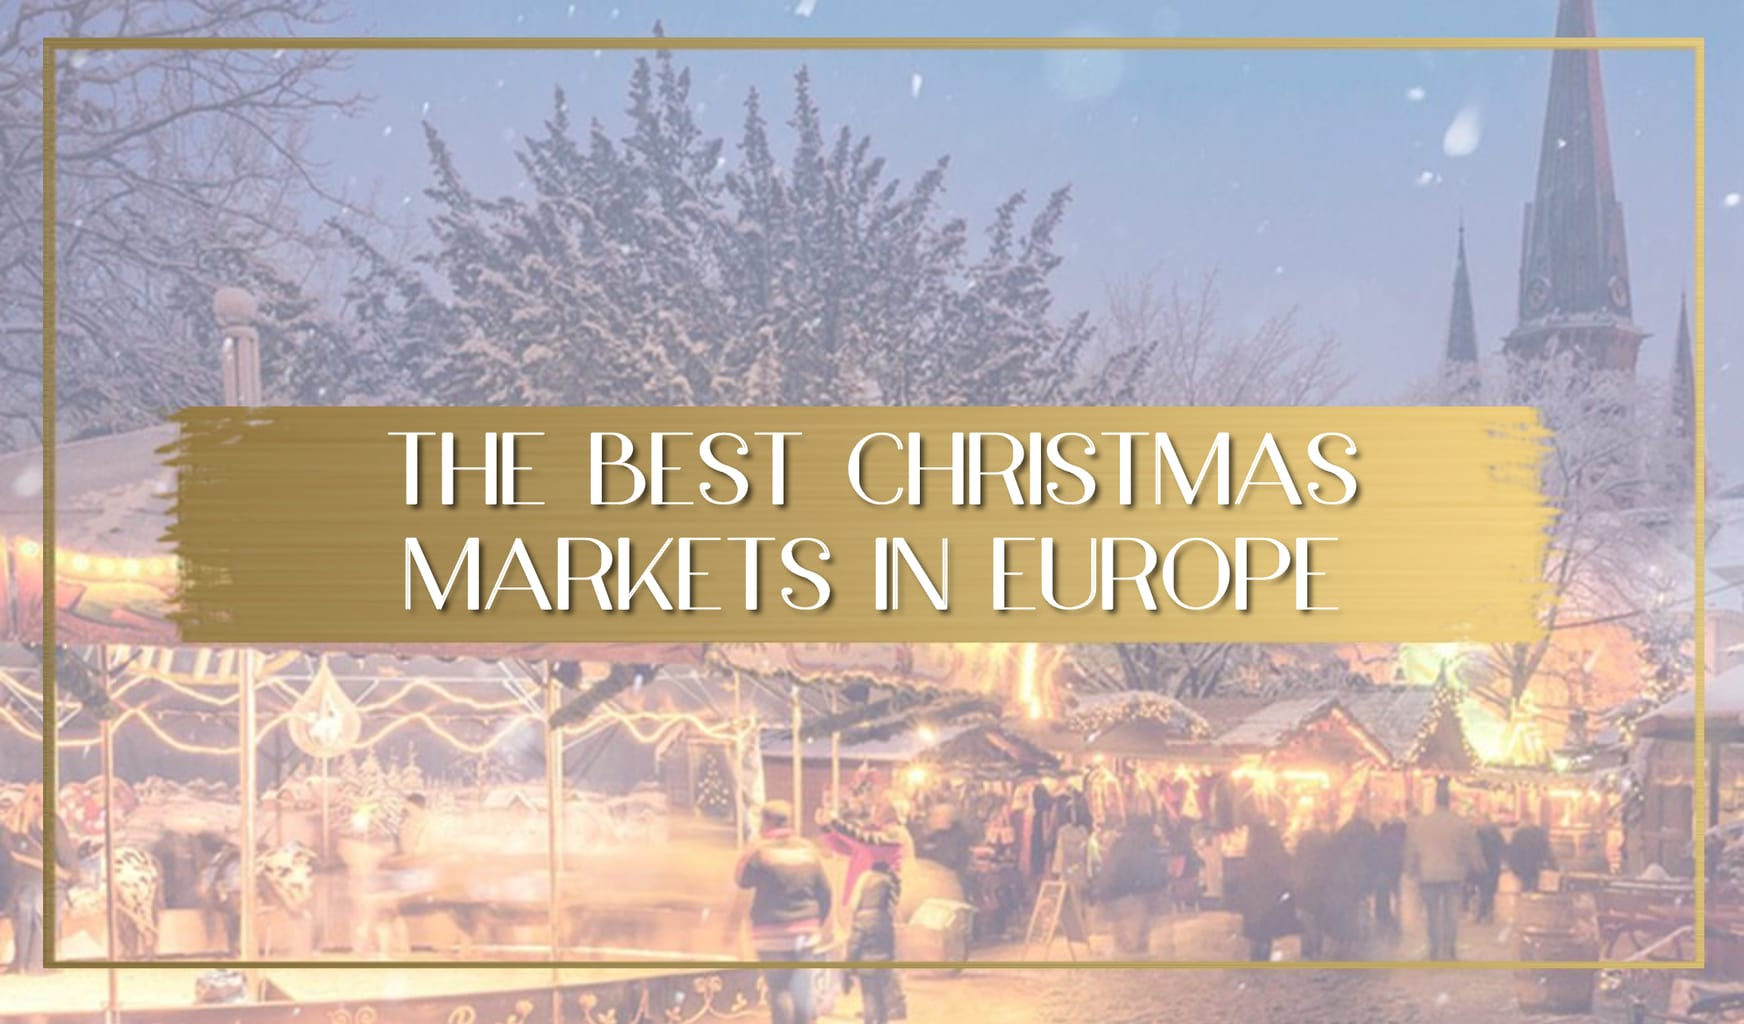 The best Christmas markets in Europe main